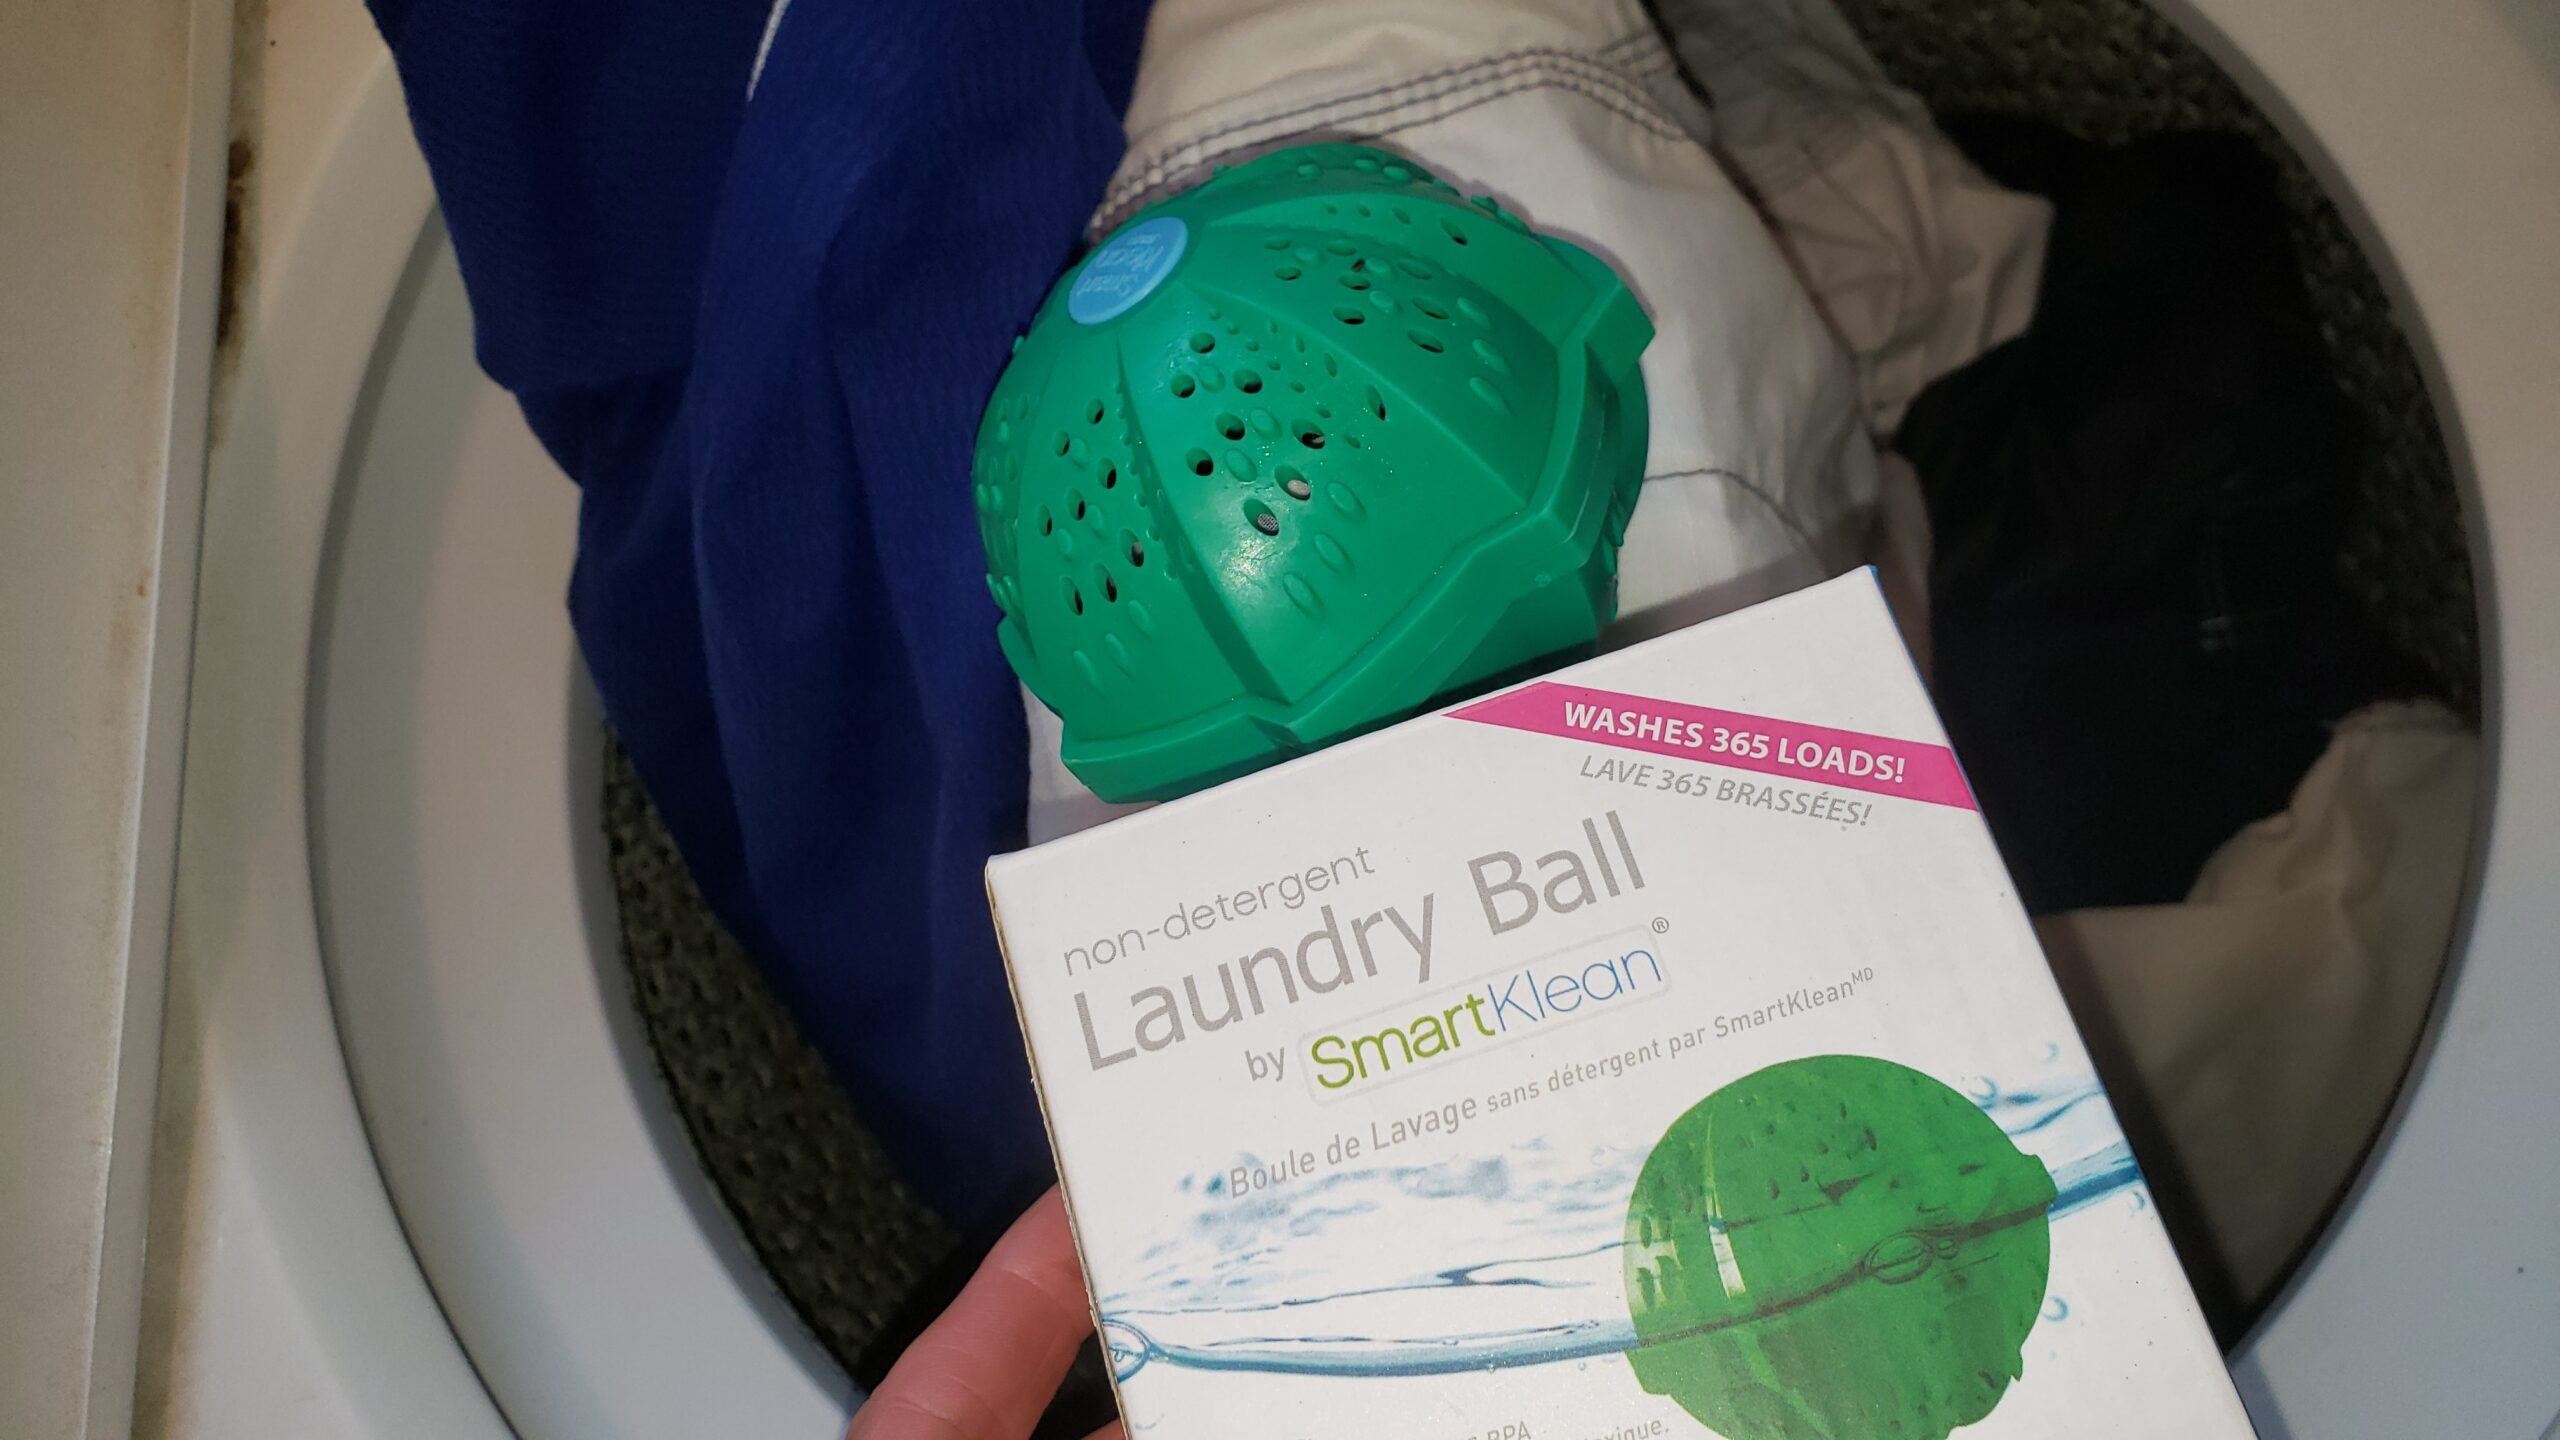 A better way to clean clothes – The Laundry Ball